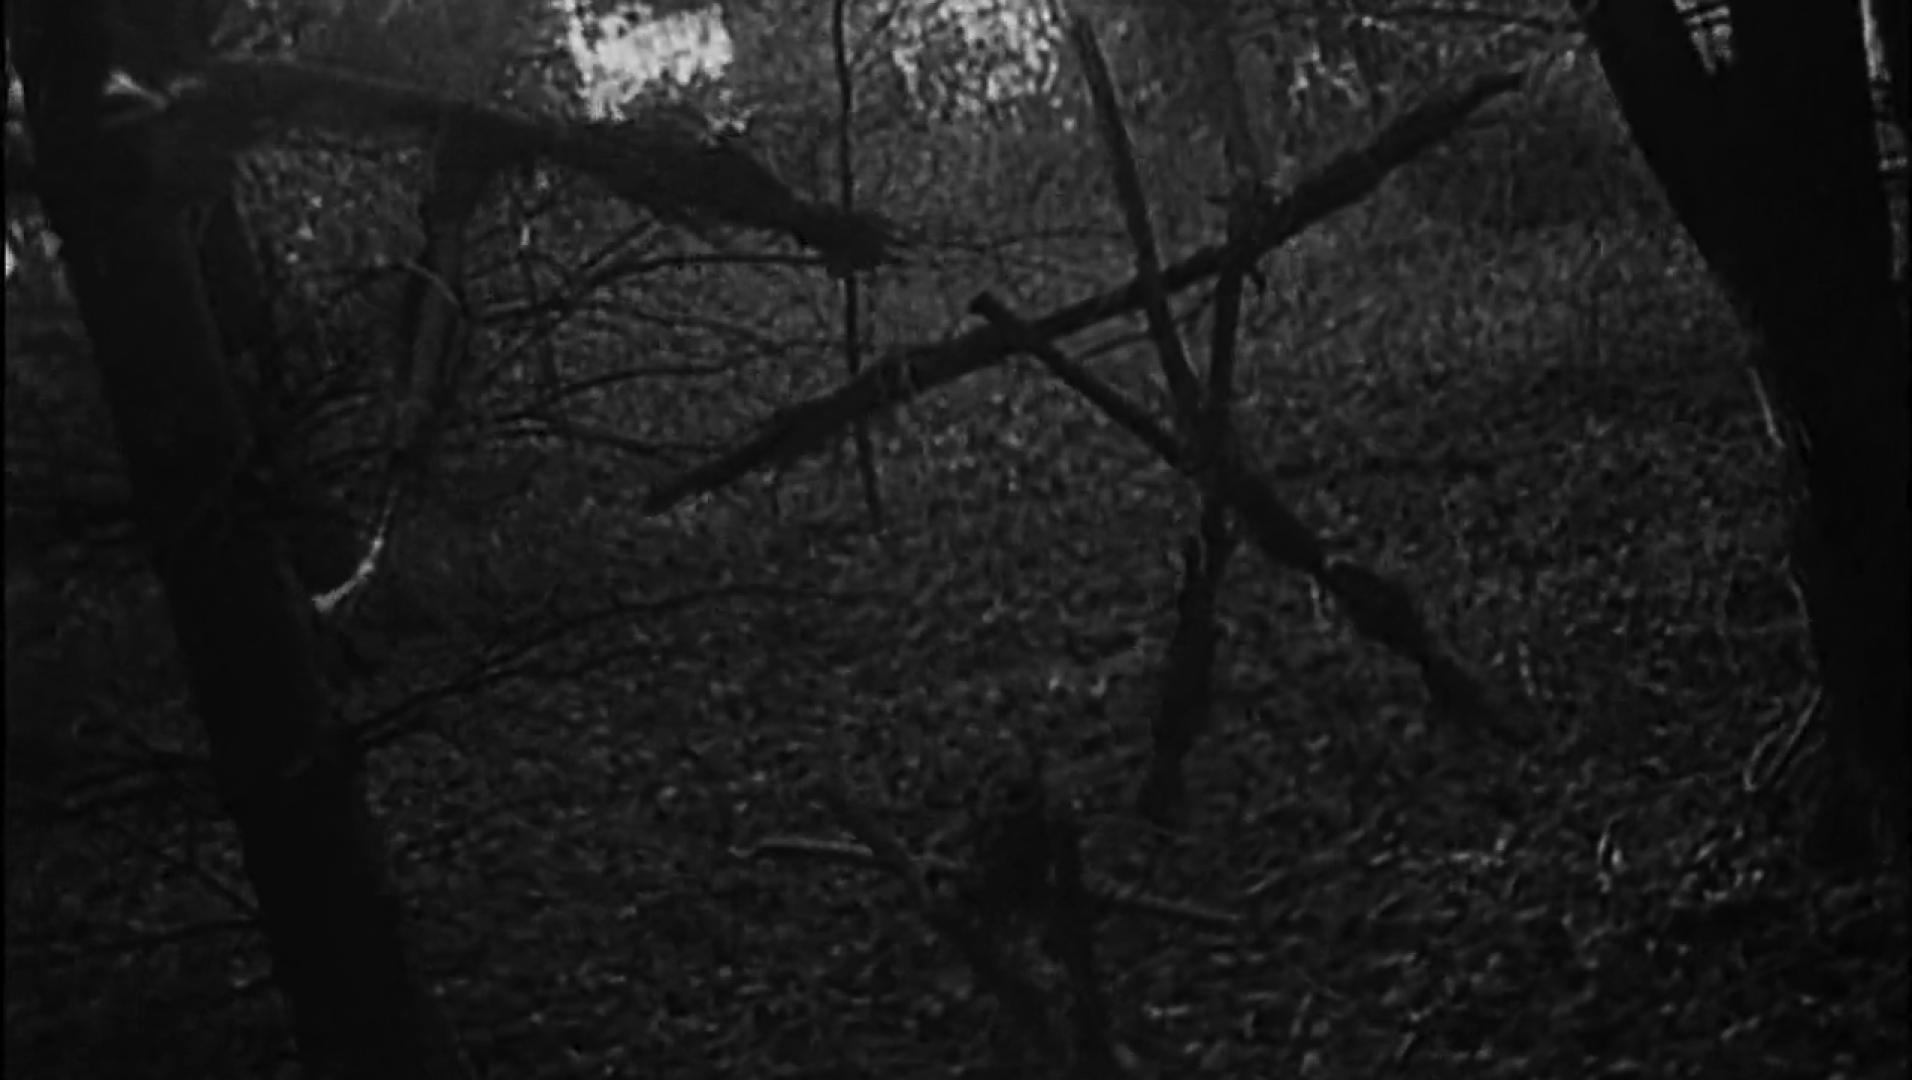 The Blair Witch Project - Ideglelés (1999)